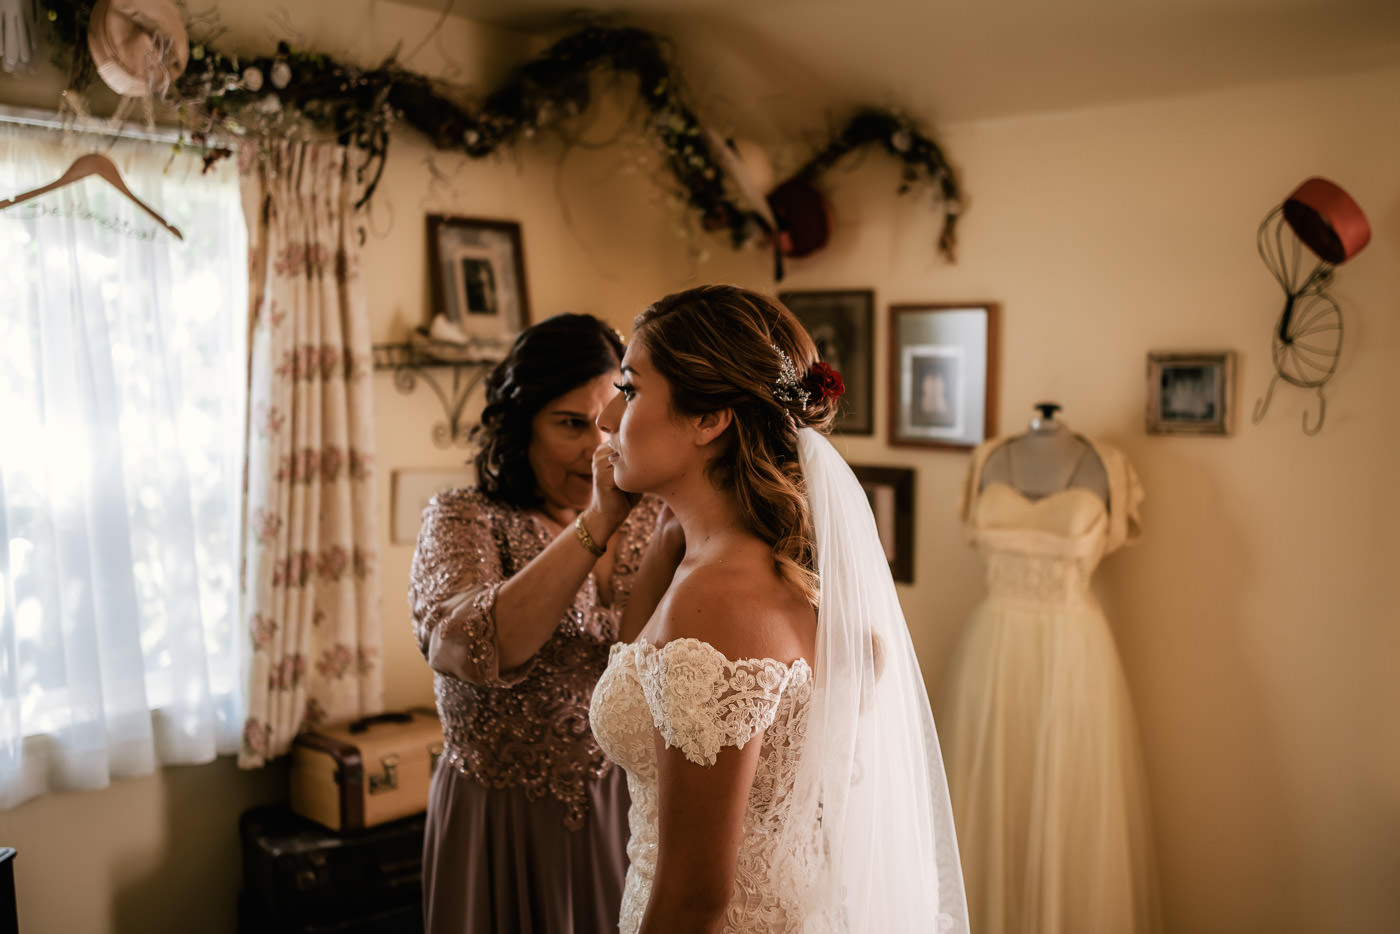 Mother of the bride puts earrings on her daughter before her wedding.